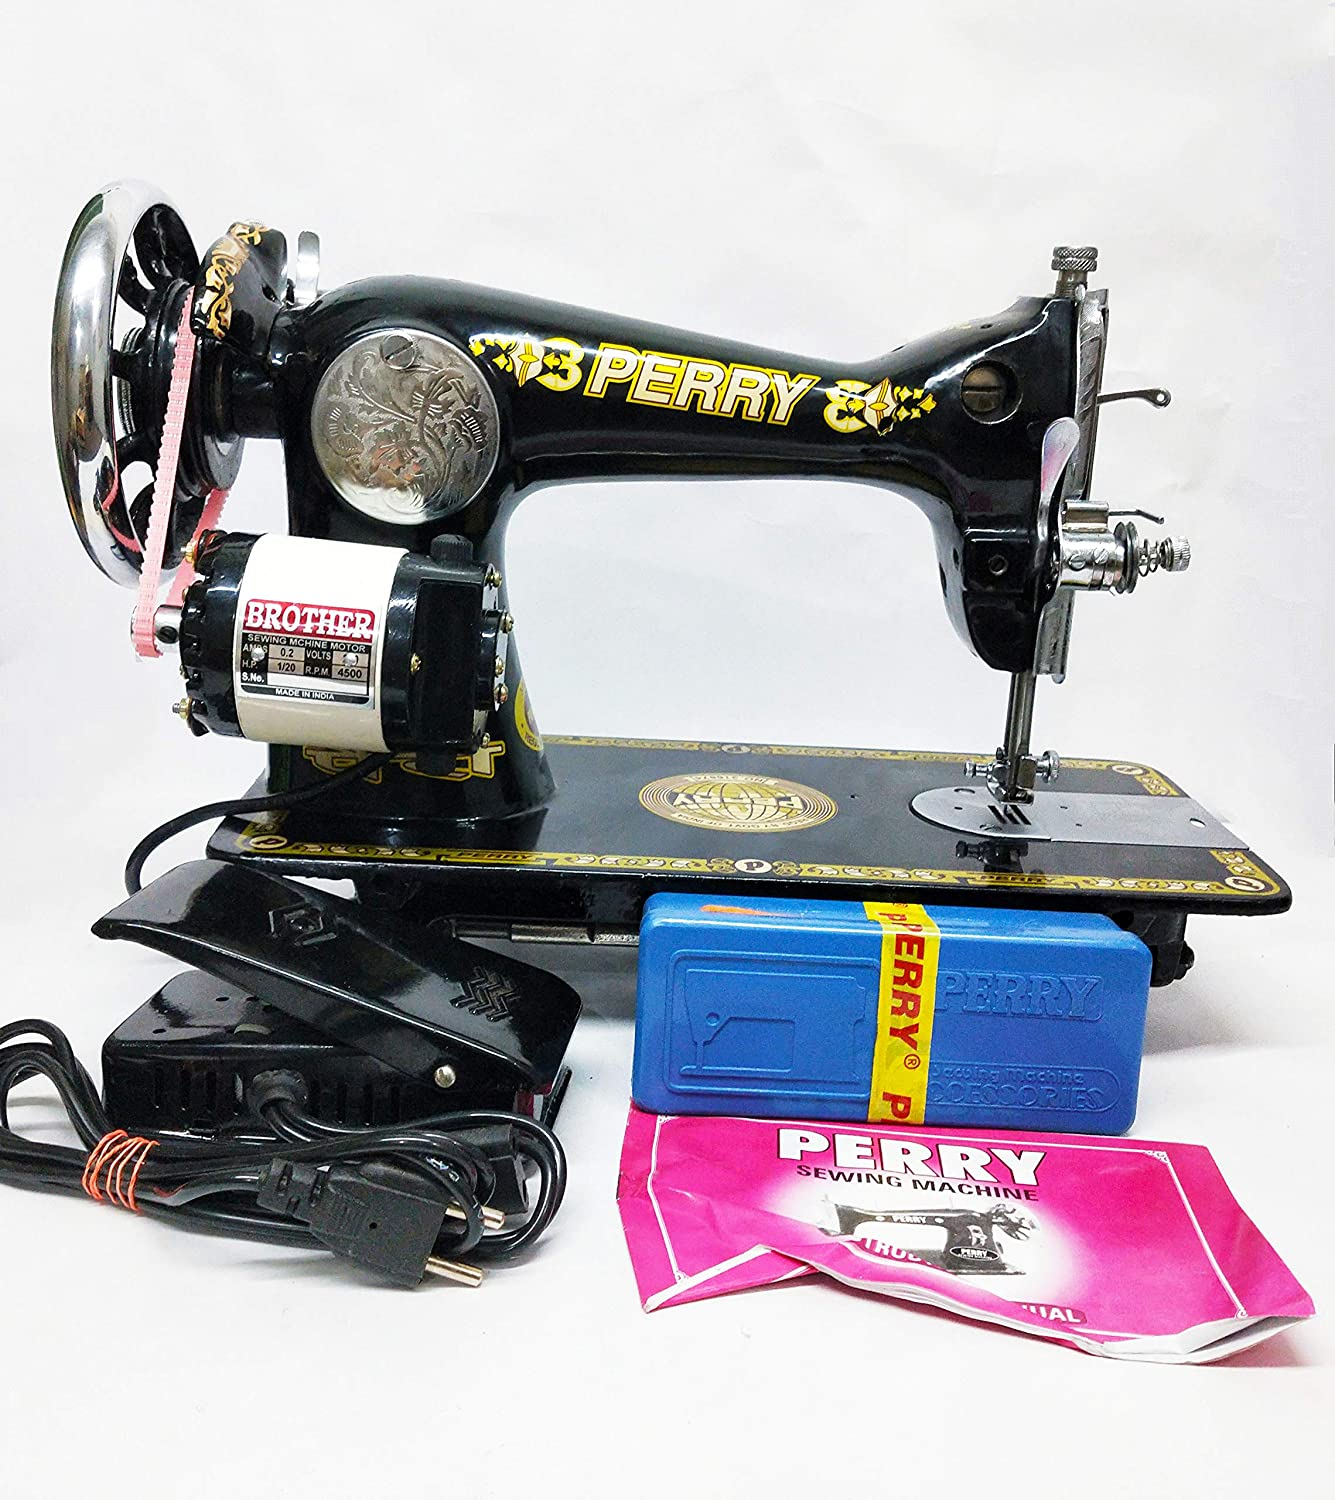 PERRY Sewing Machine